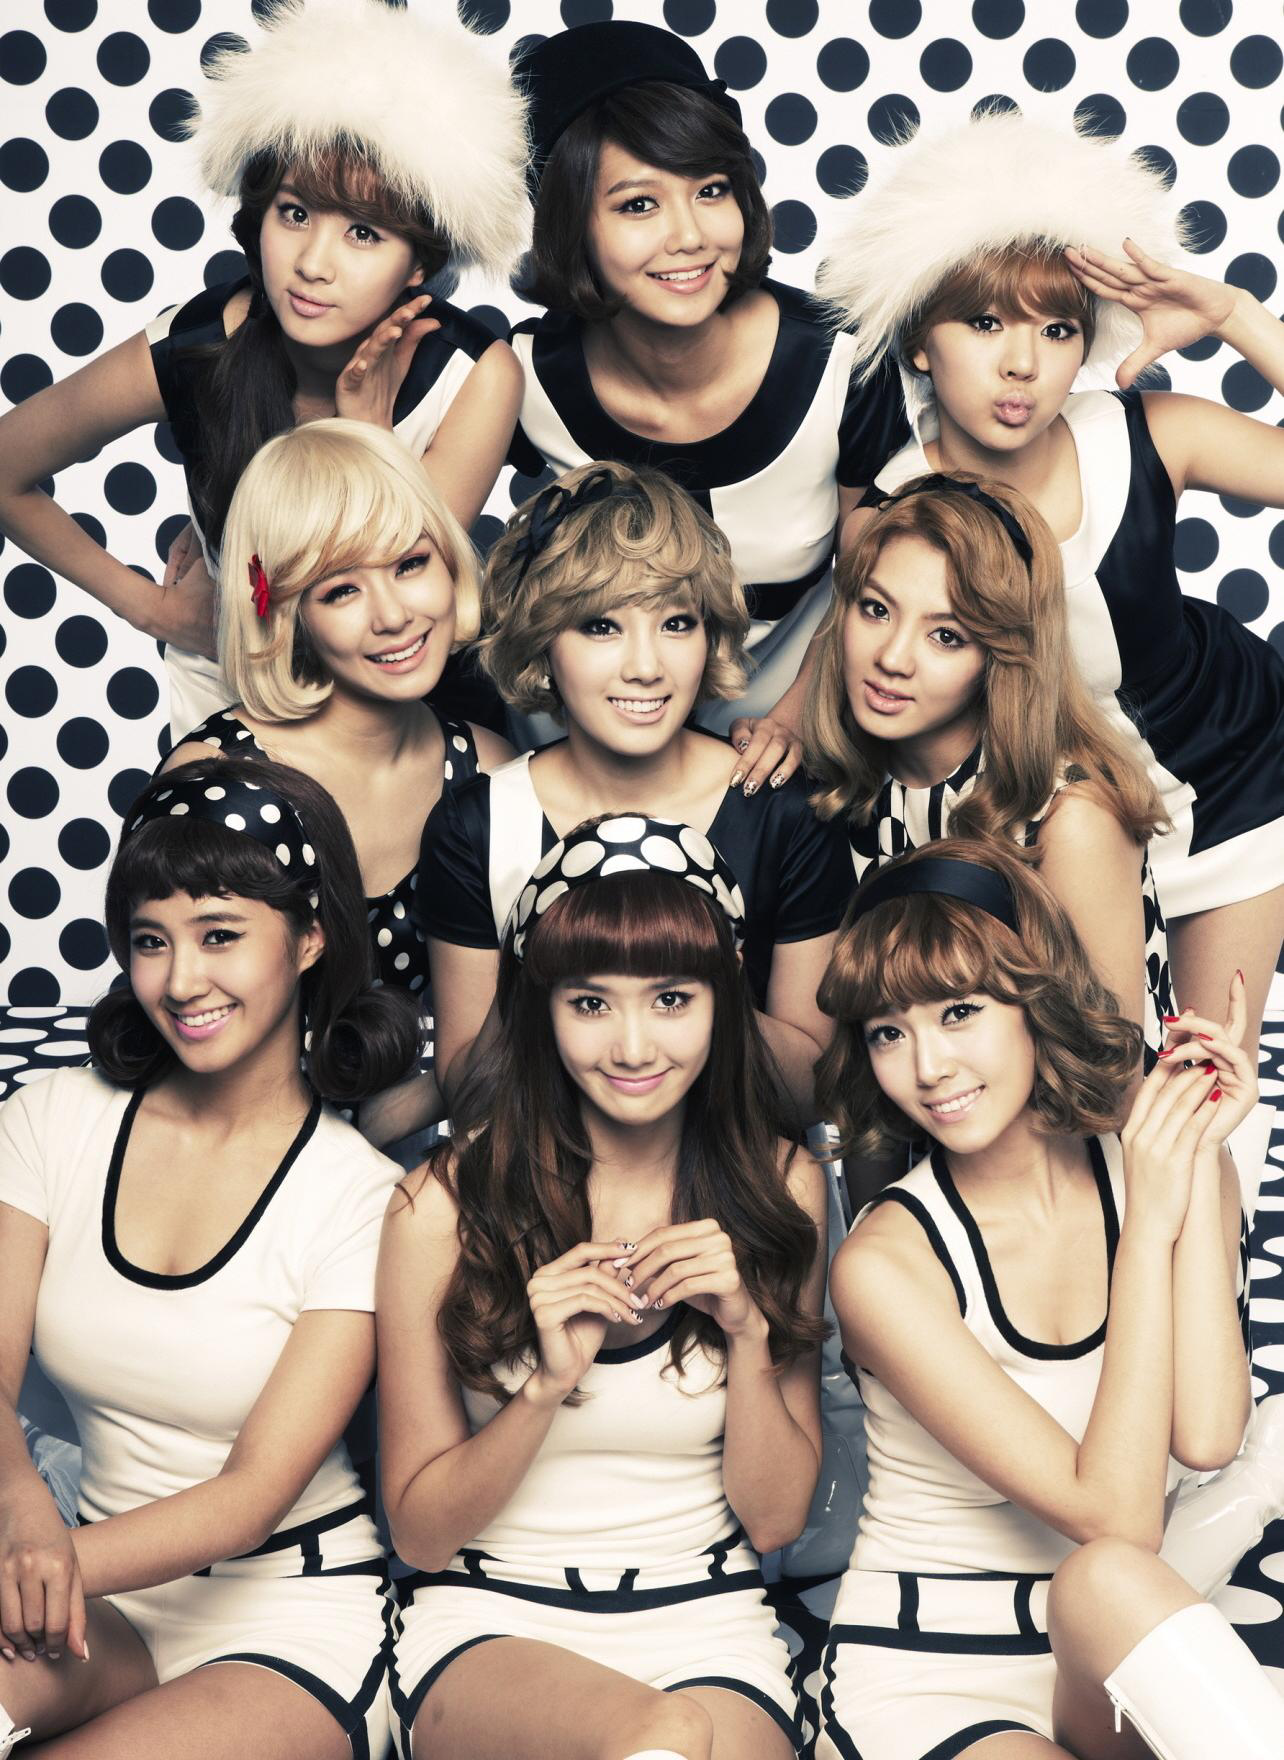 Dads Hookup Their Girls Generation Pictures With Names